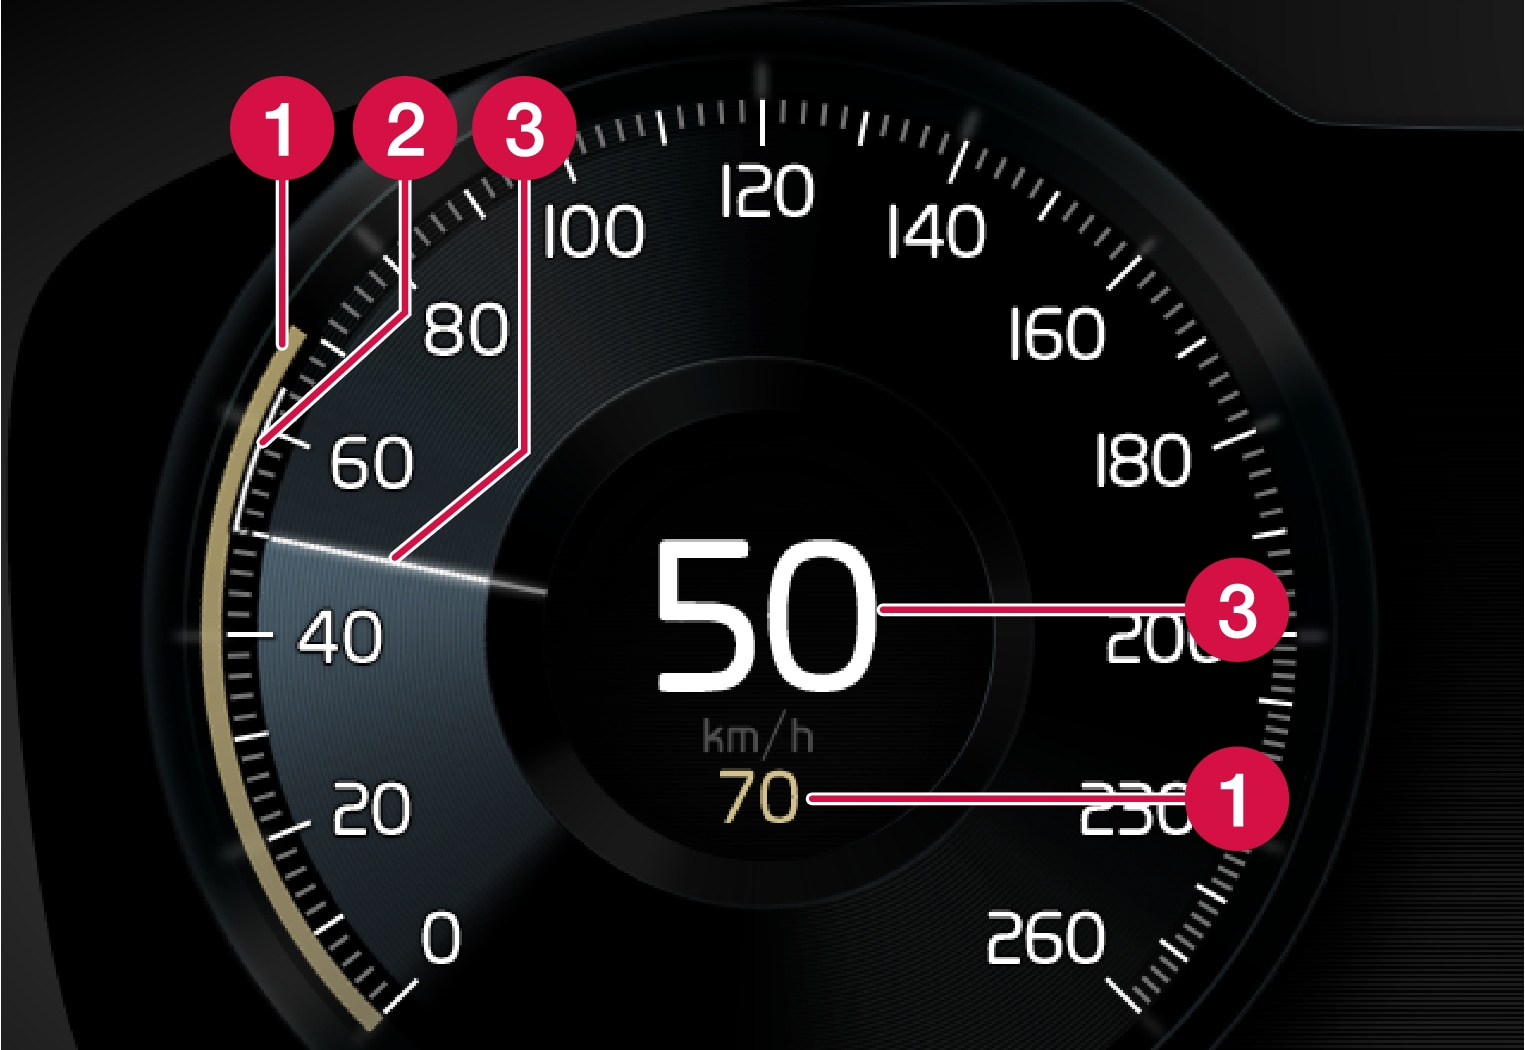 P5-1507-Adaptive Cruise Control, Indication of speed